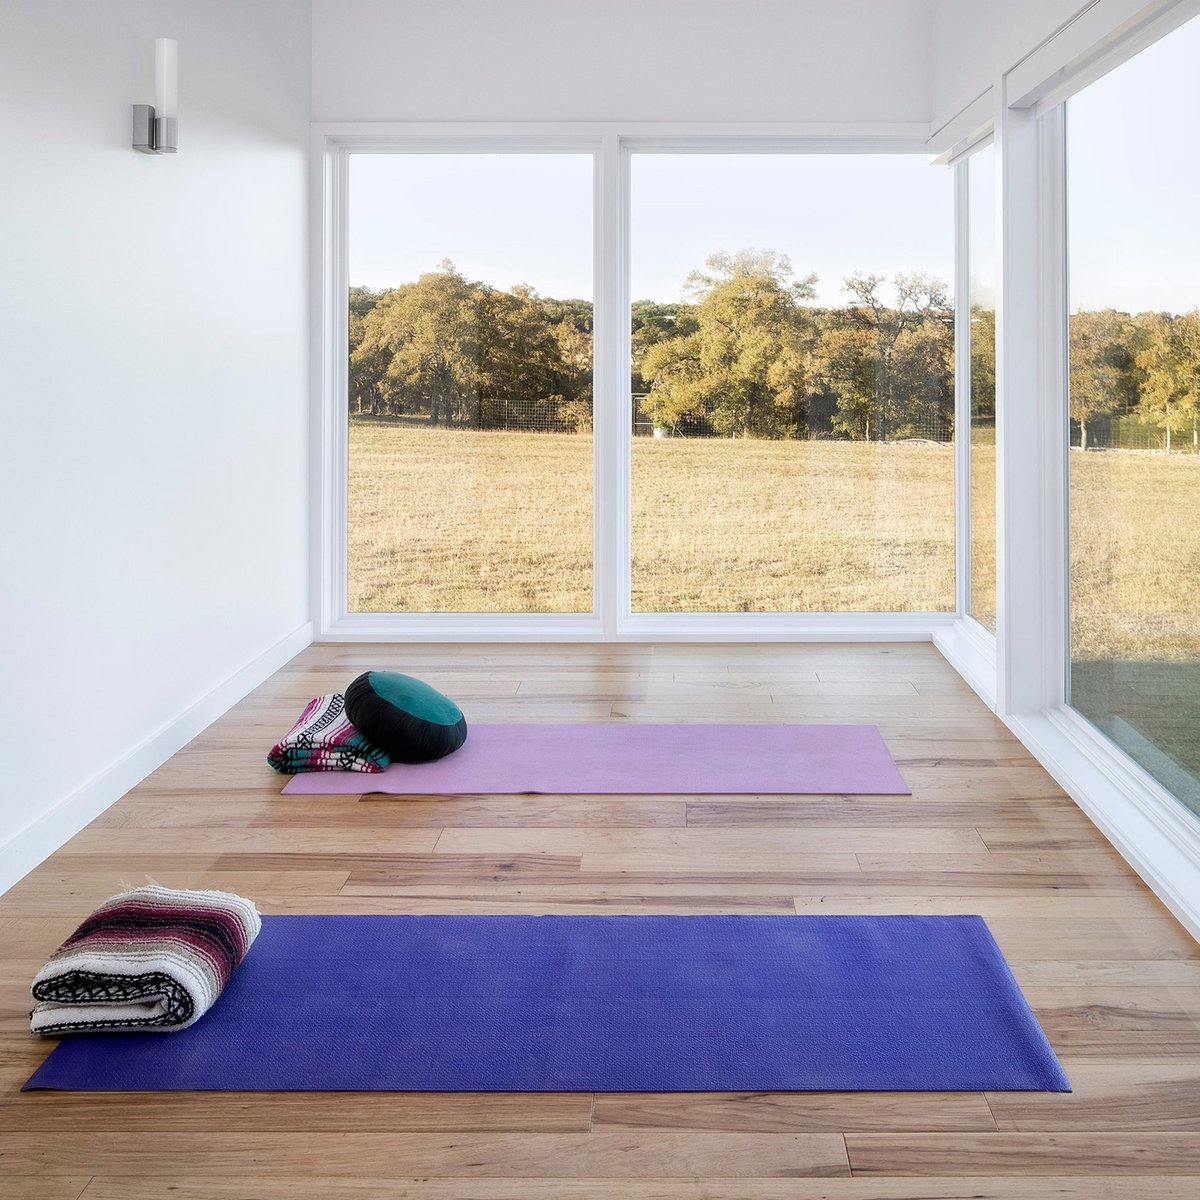 Weve rounded up 10 houses from across the globe with rooms dedicated to yoga and meditation: at.dezeen.com/2YcPyLl